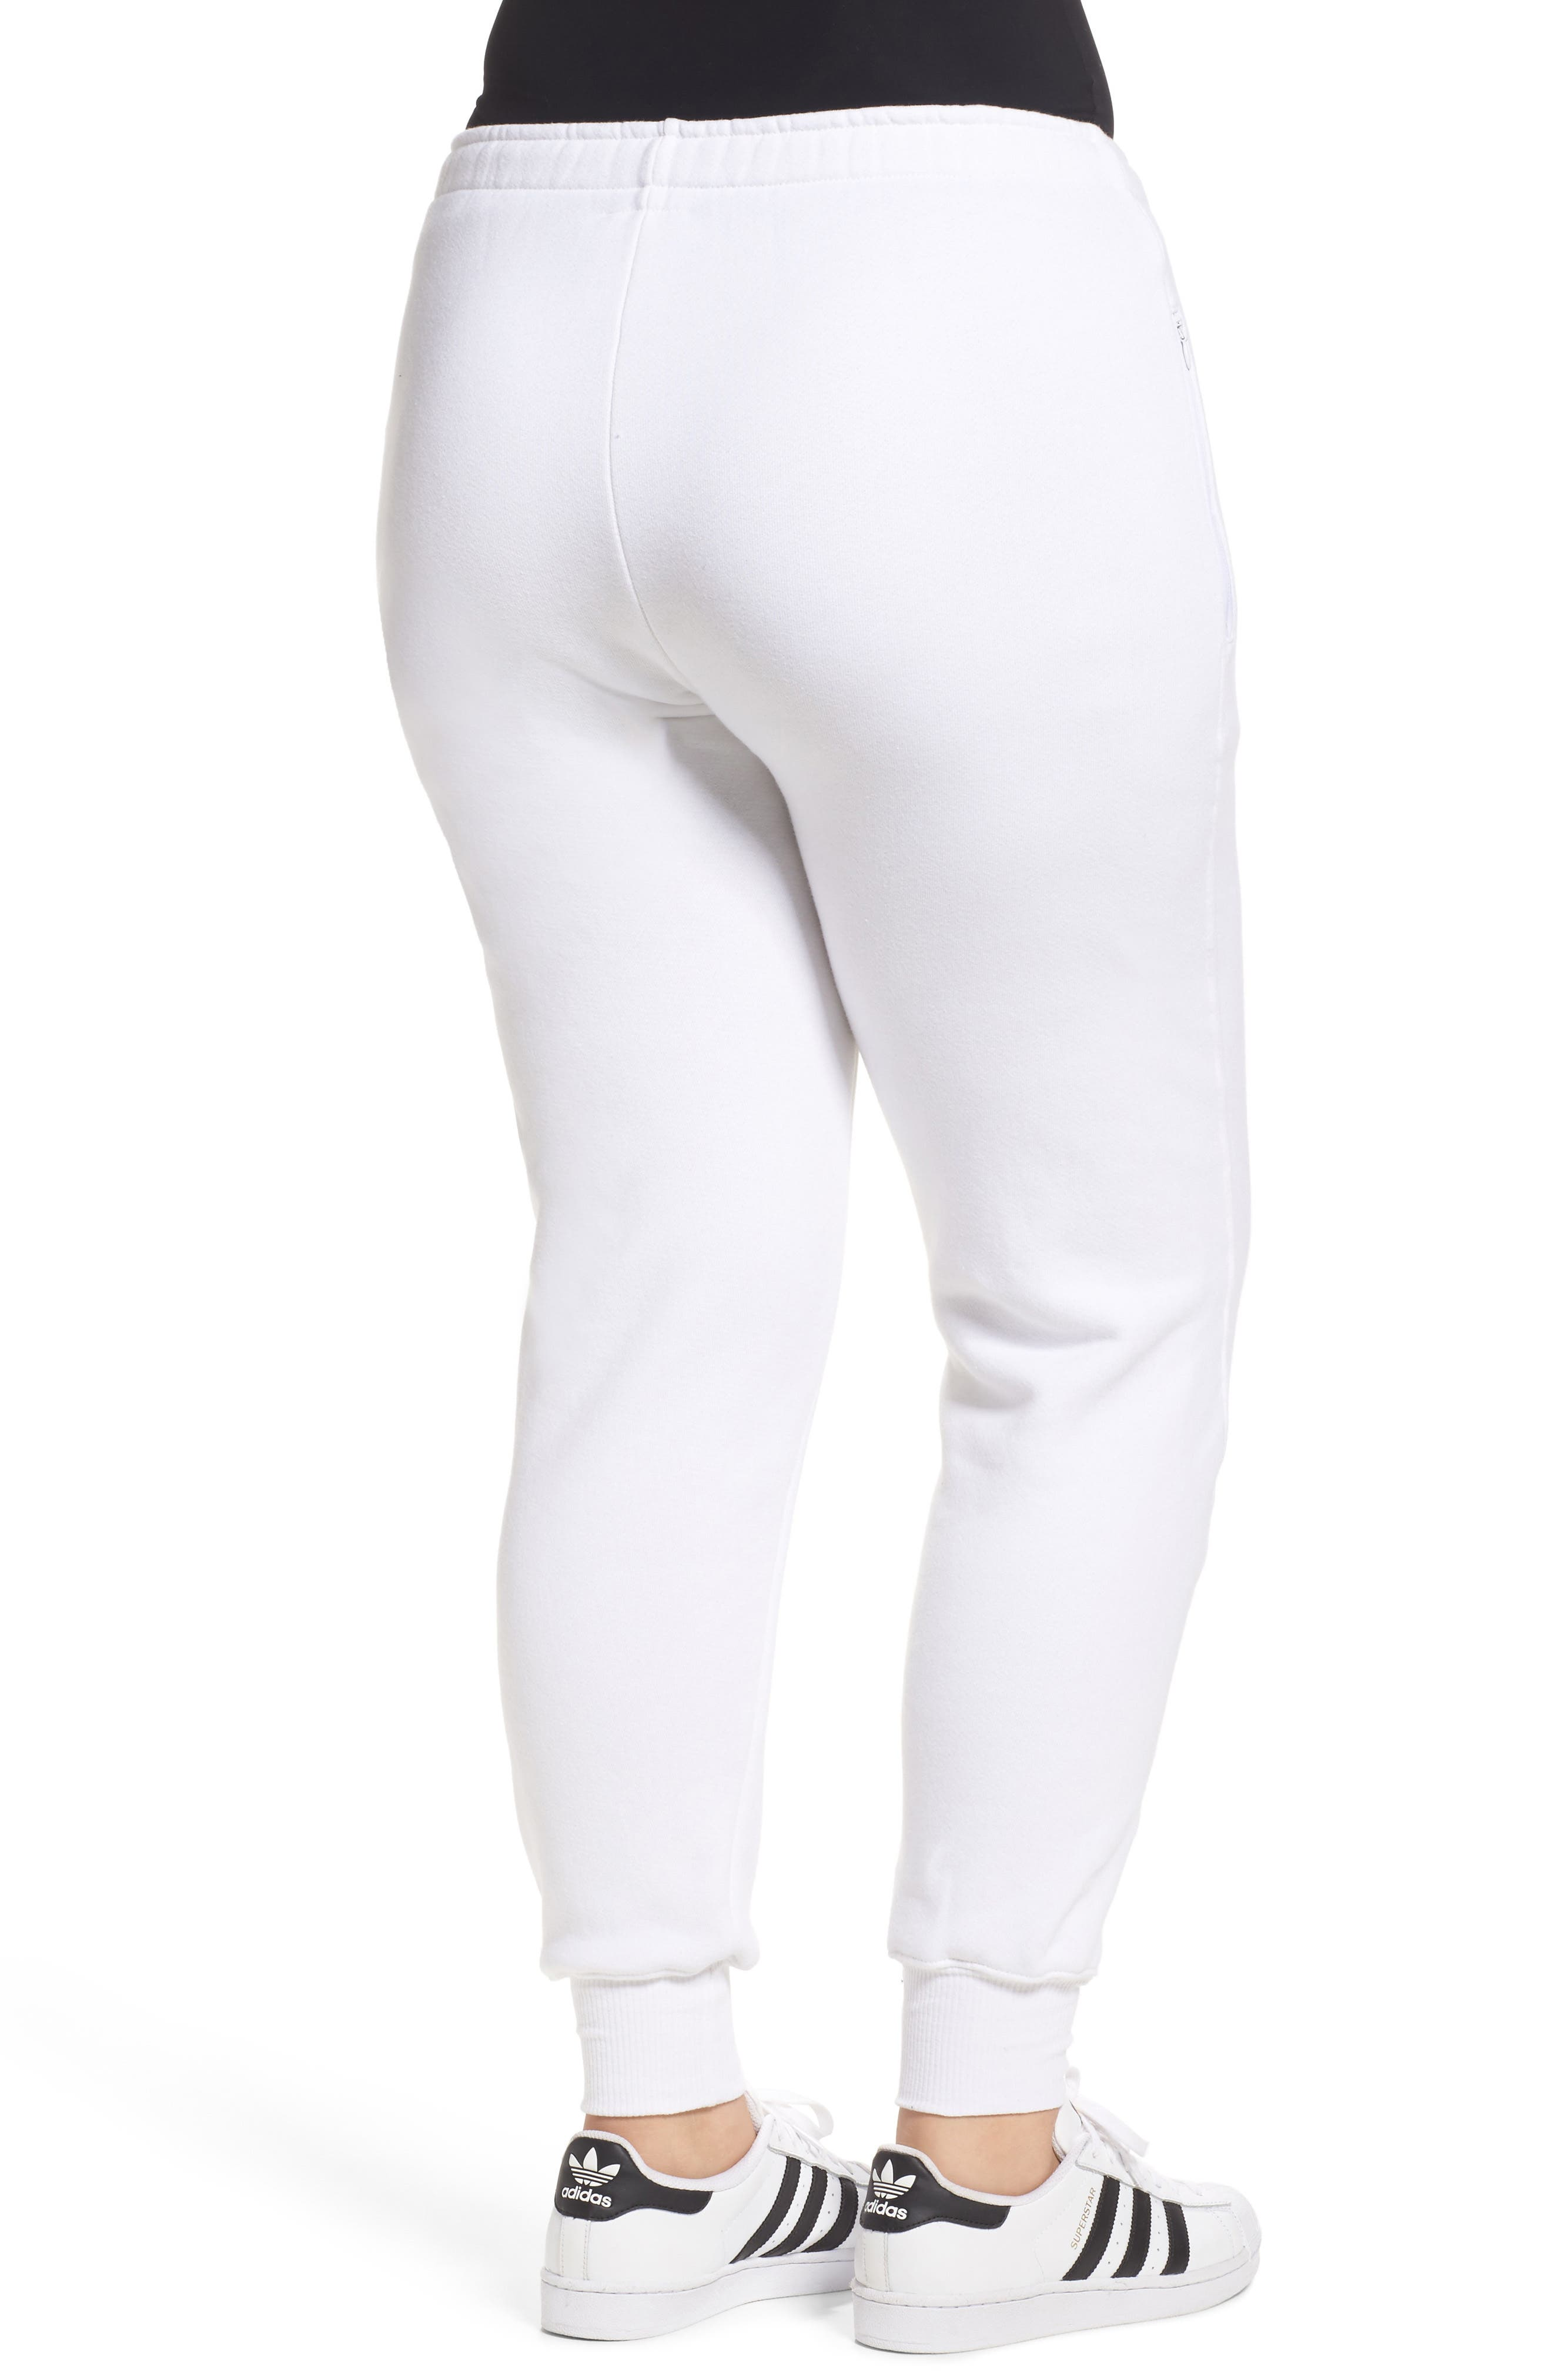 Good Sweats The Twisted Seam Pants,                             Alternate thumbnail 8, color,